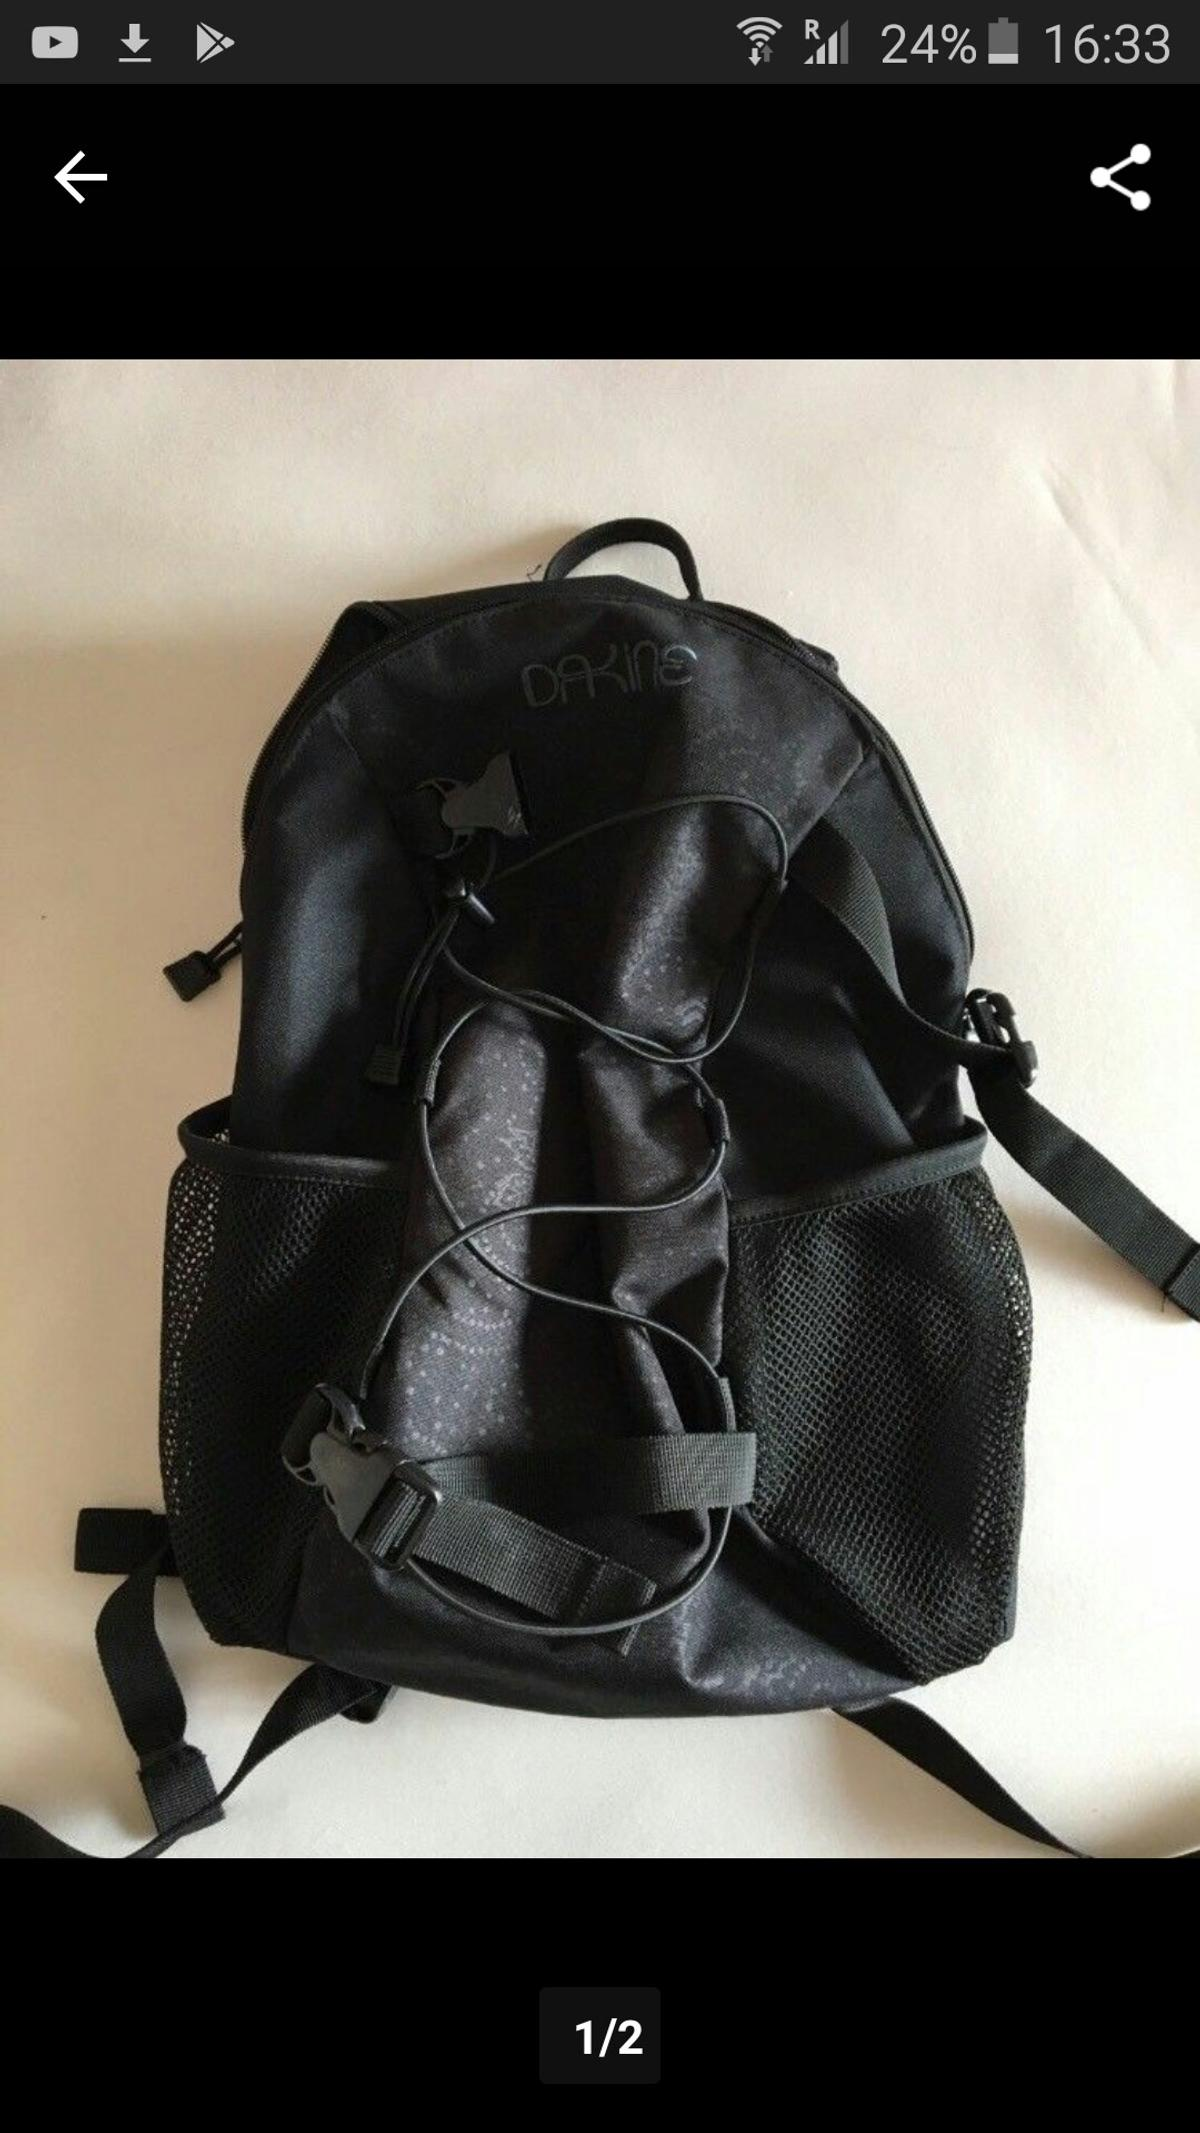 ce7d342b58a3f dakine Rucksack 15 l schwarz in 94032 Thanöd for €22.00 for sale ...